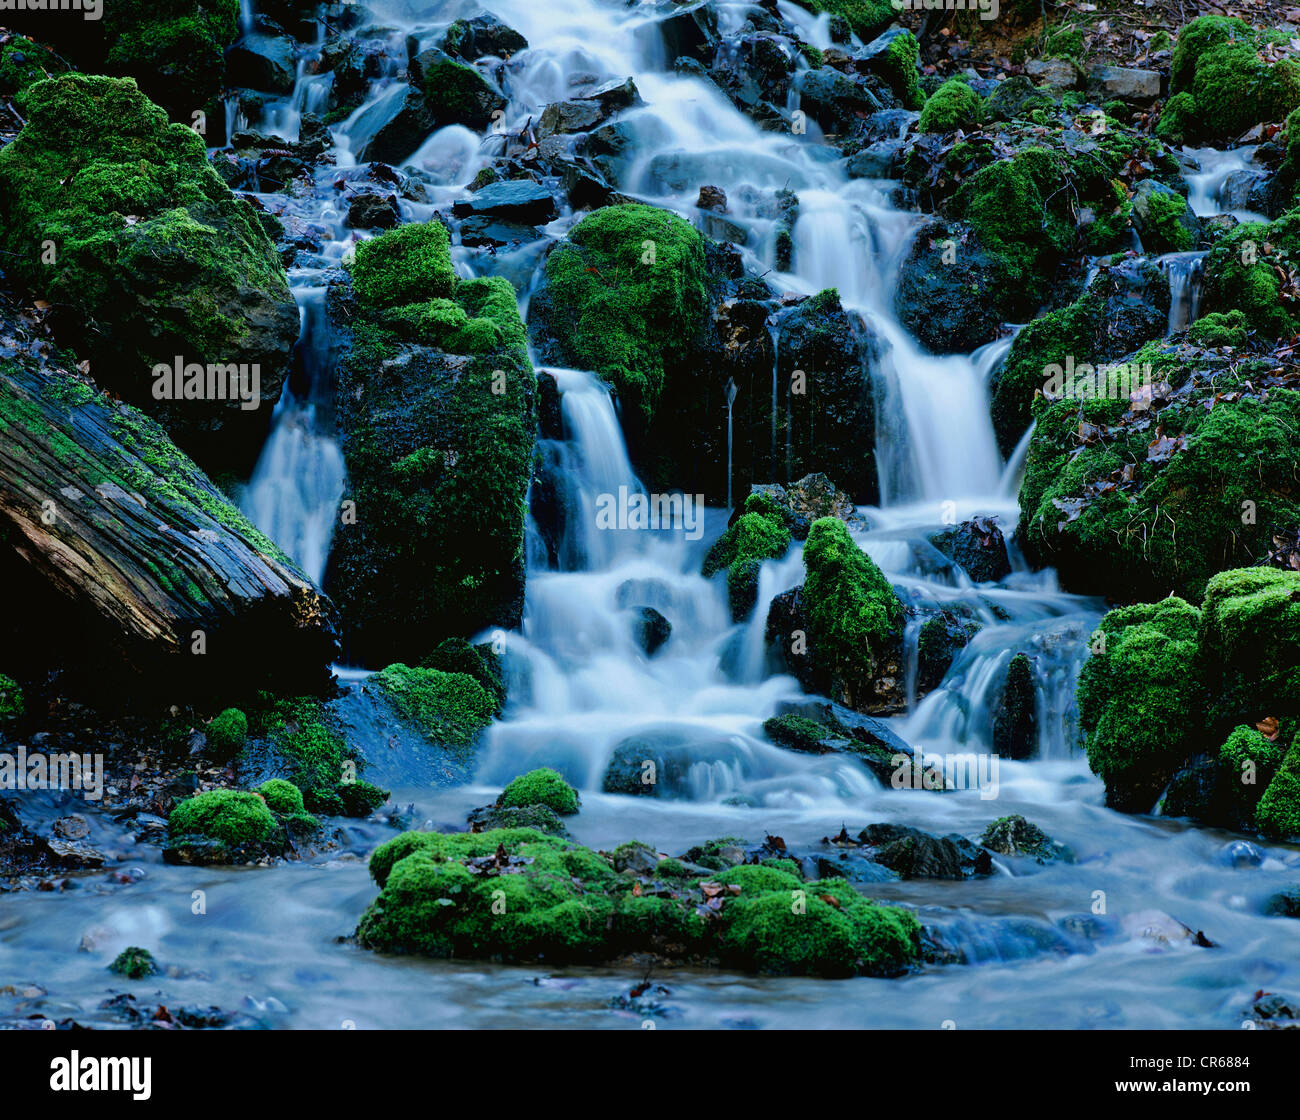 Waterfall in a forest, mountain torrent, Glasbach stream, North Rhine-Westphalia, Germany, Europe - Stock Image